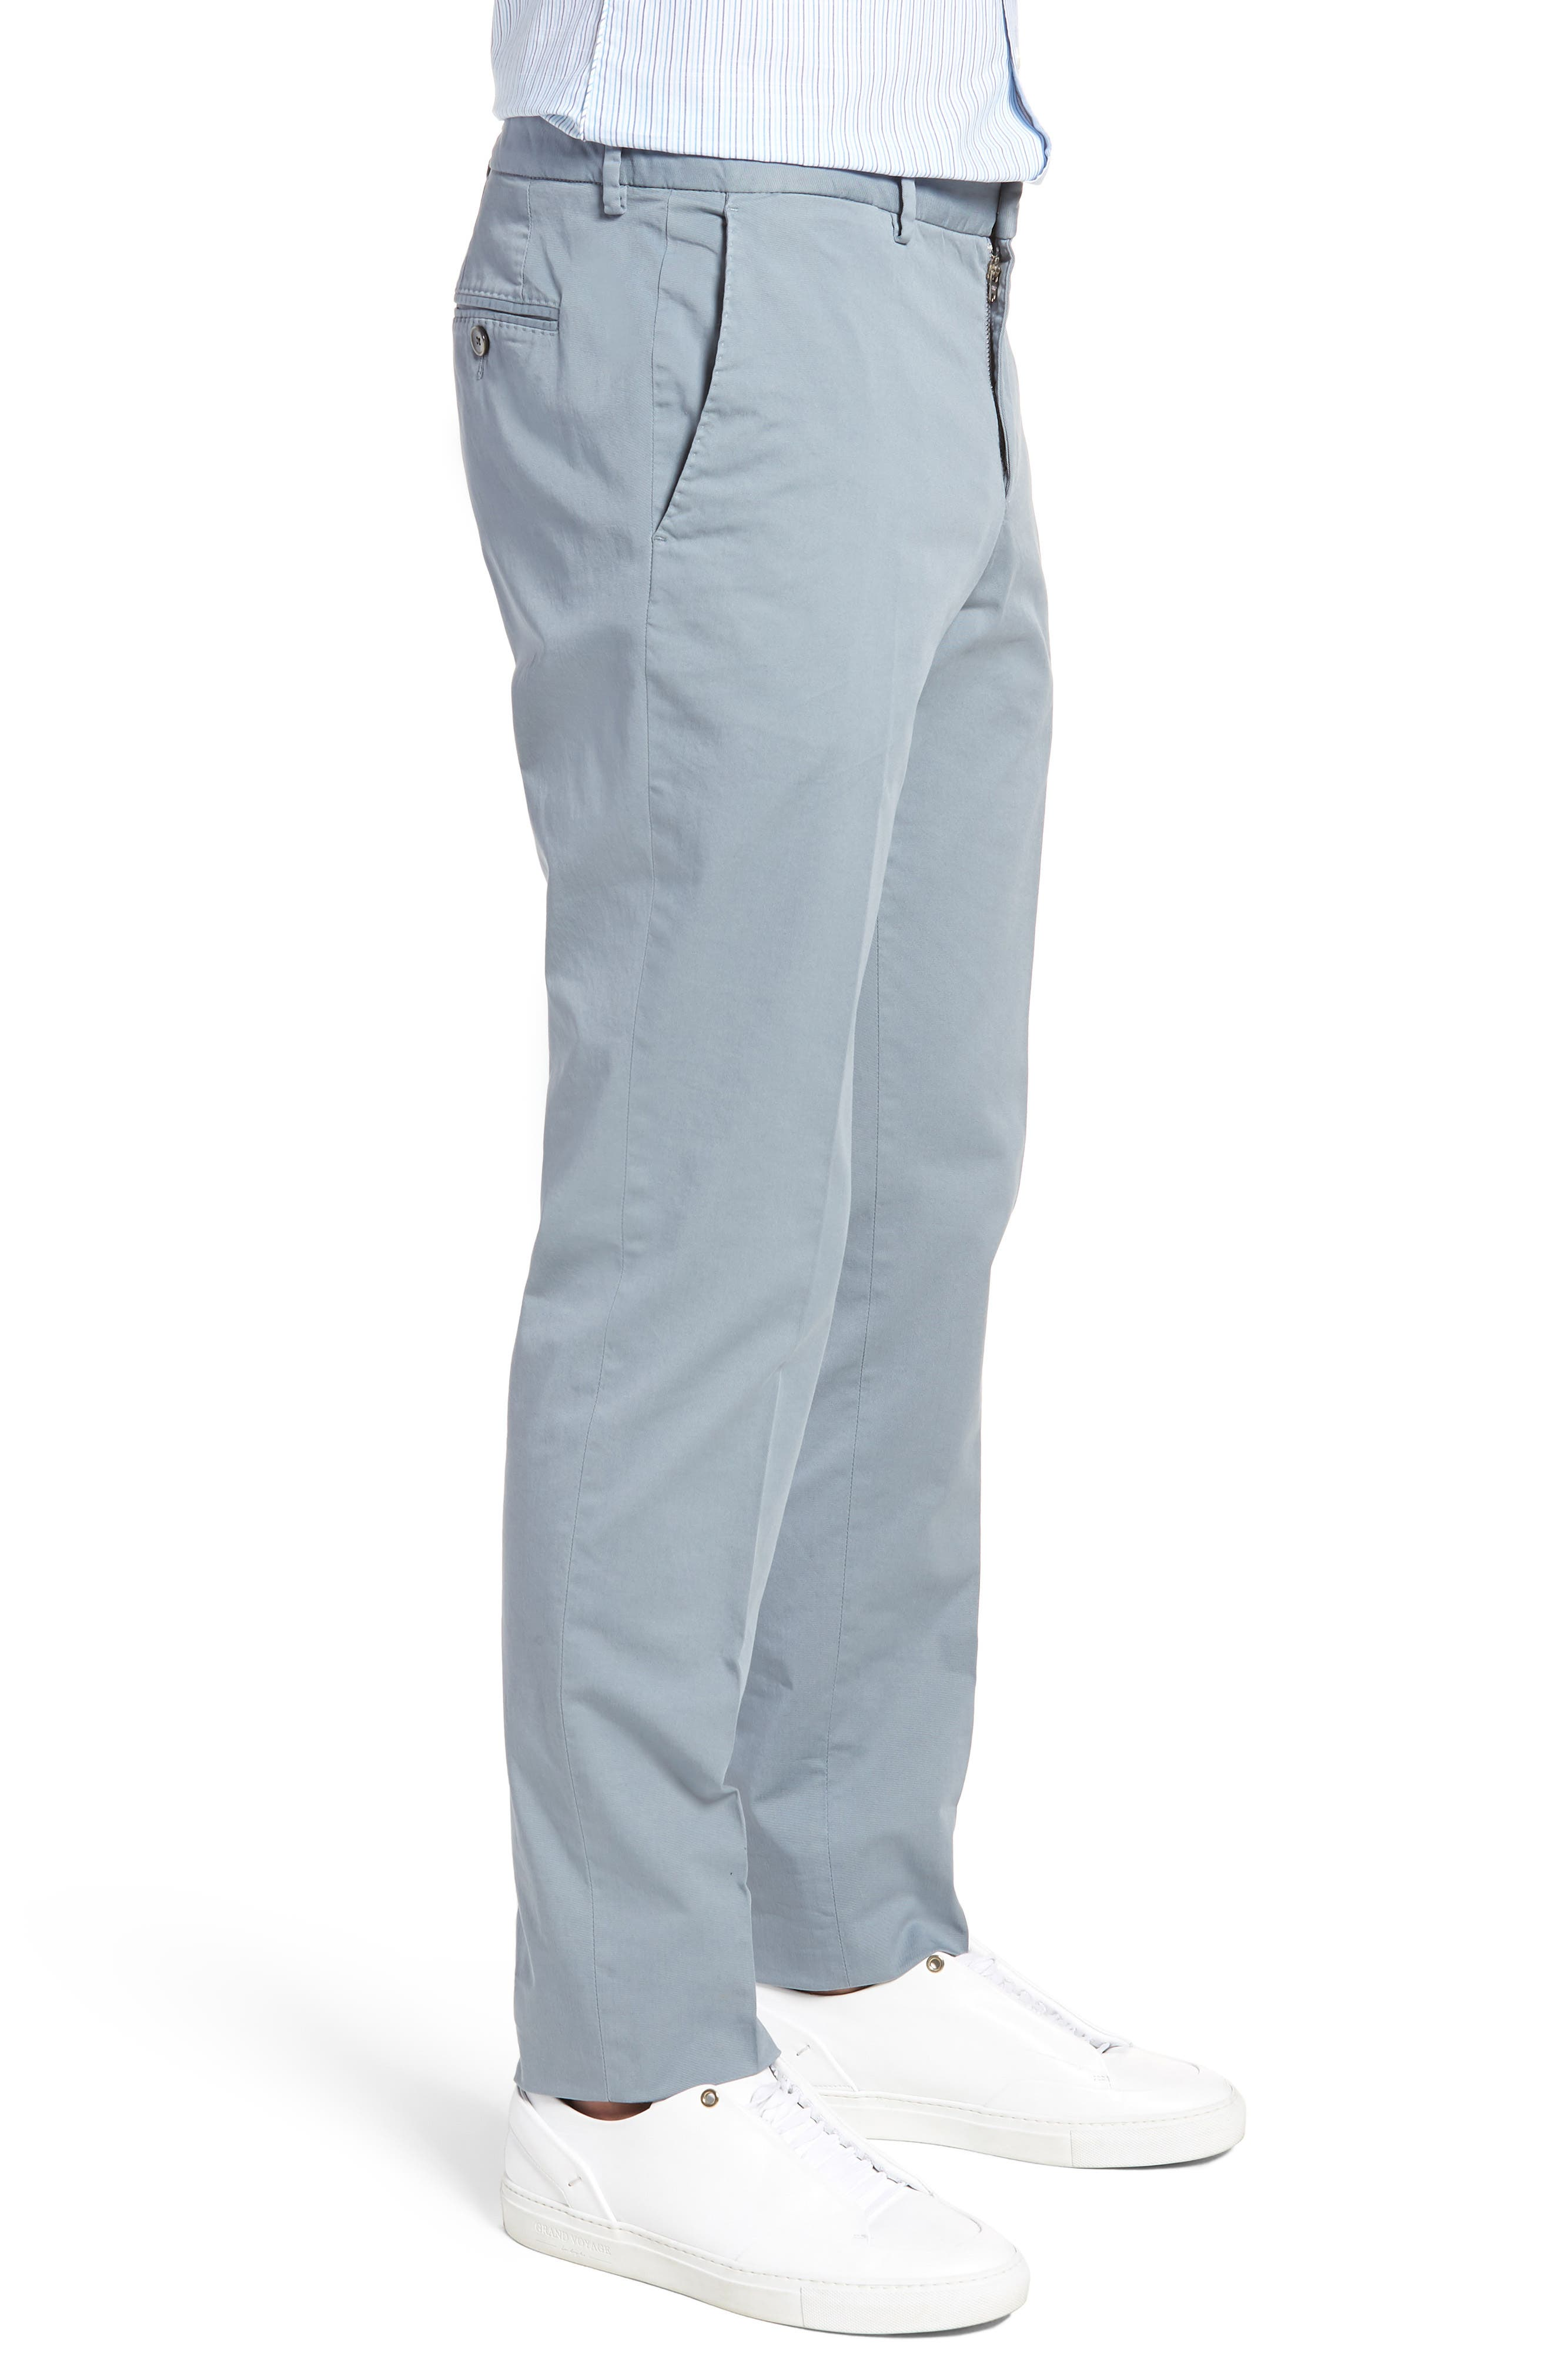 Barlow-D Flat Front Stretch Solid Cotton Trousers,                             Alternate thumbnail 3, color,                             Blue